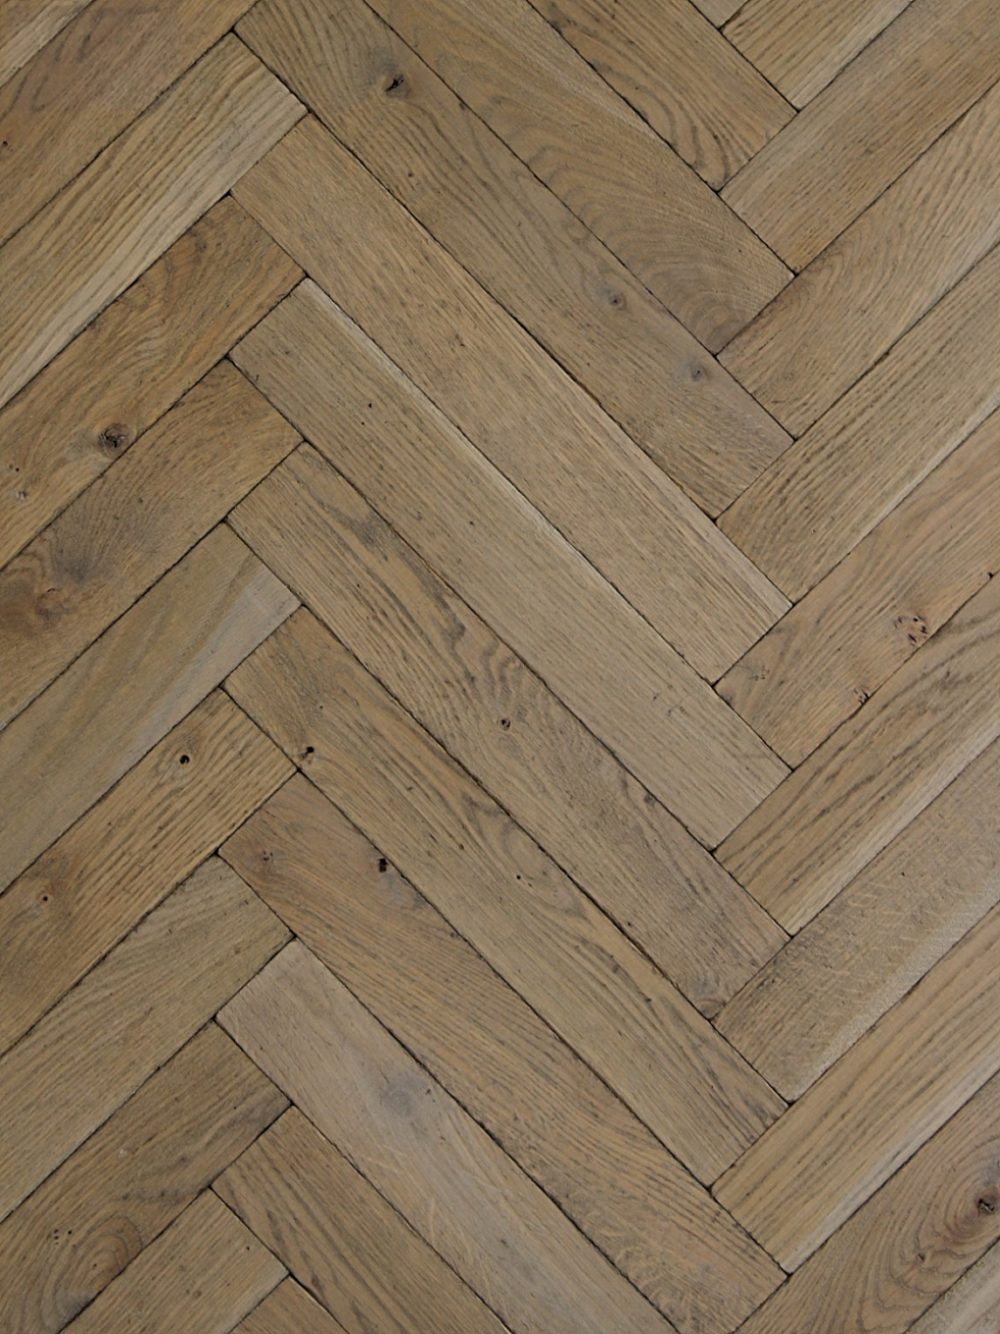 Antique Industrial Pale Grey Parquet, Distressed Solid Oak